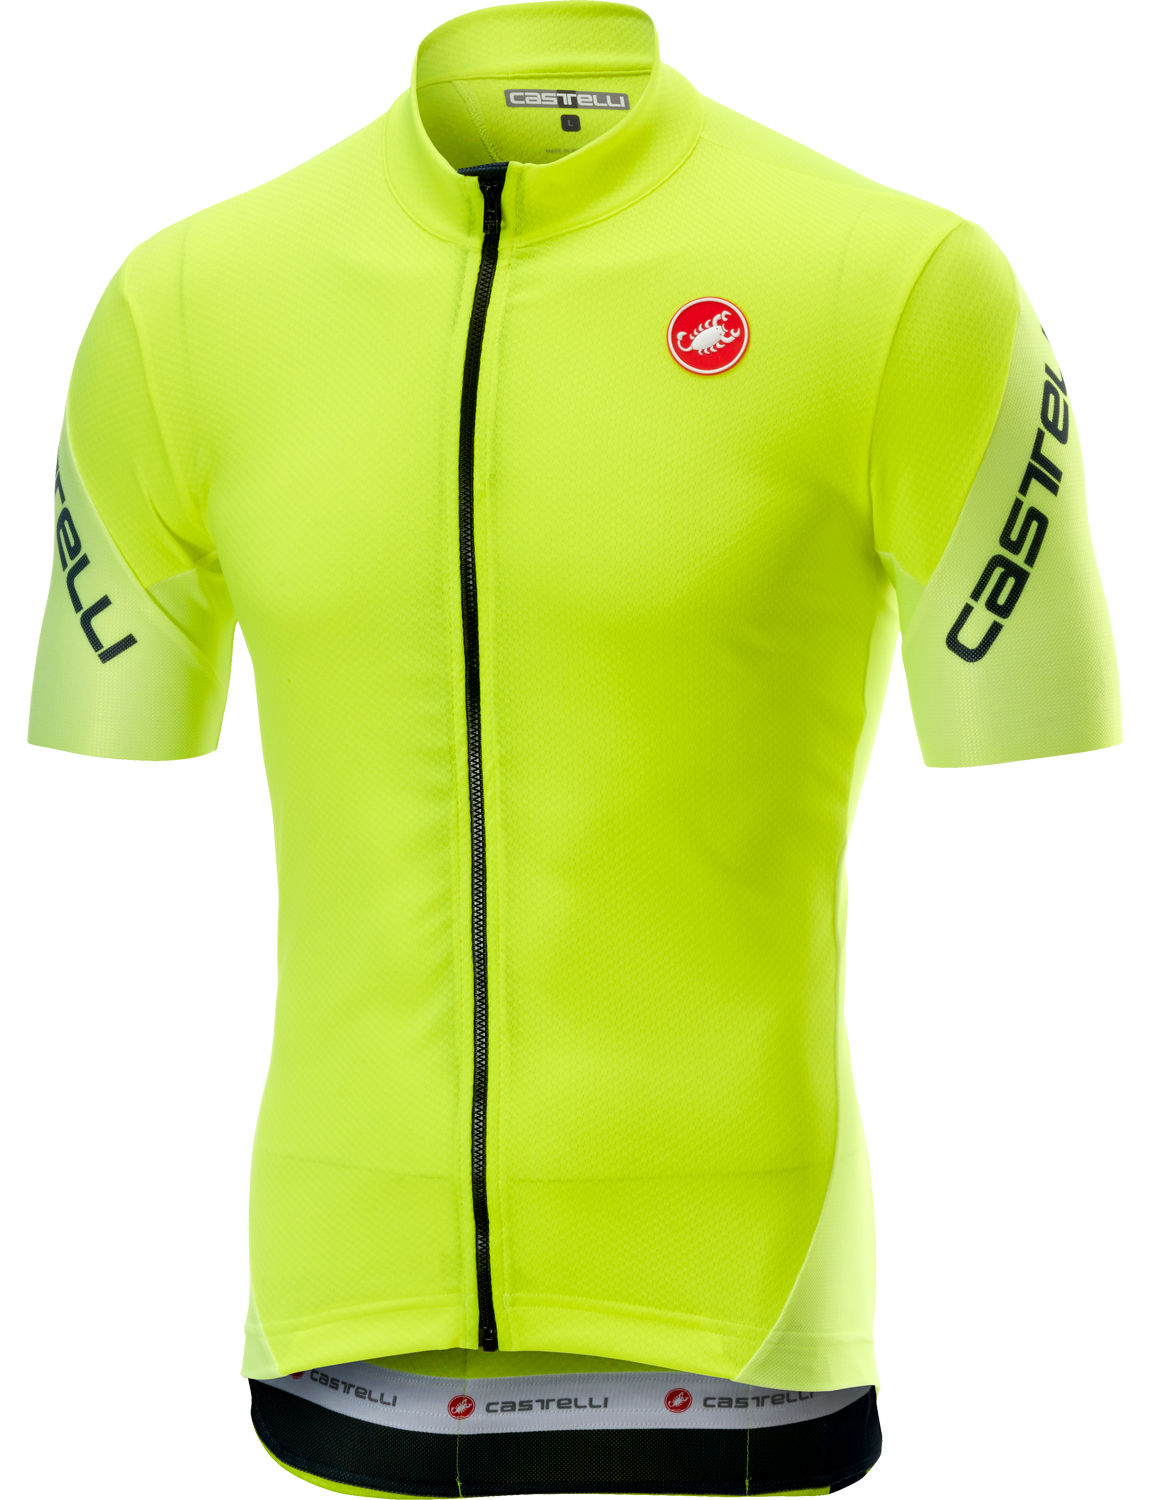 Castelli ENTRATA 3 short sleeve cycling jersey yellow fluo. Previous d07349301